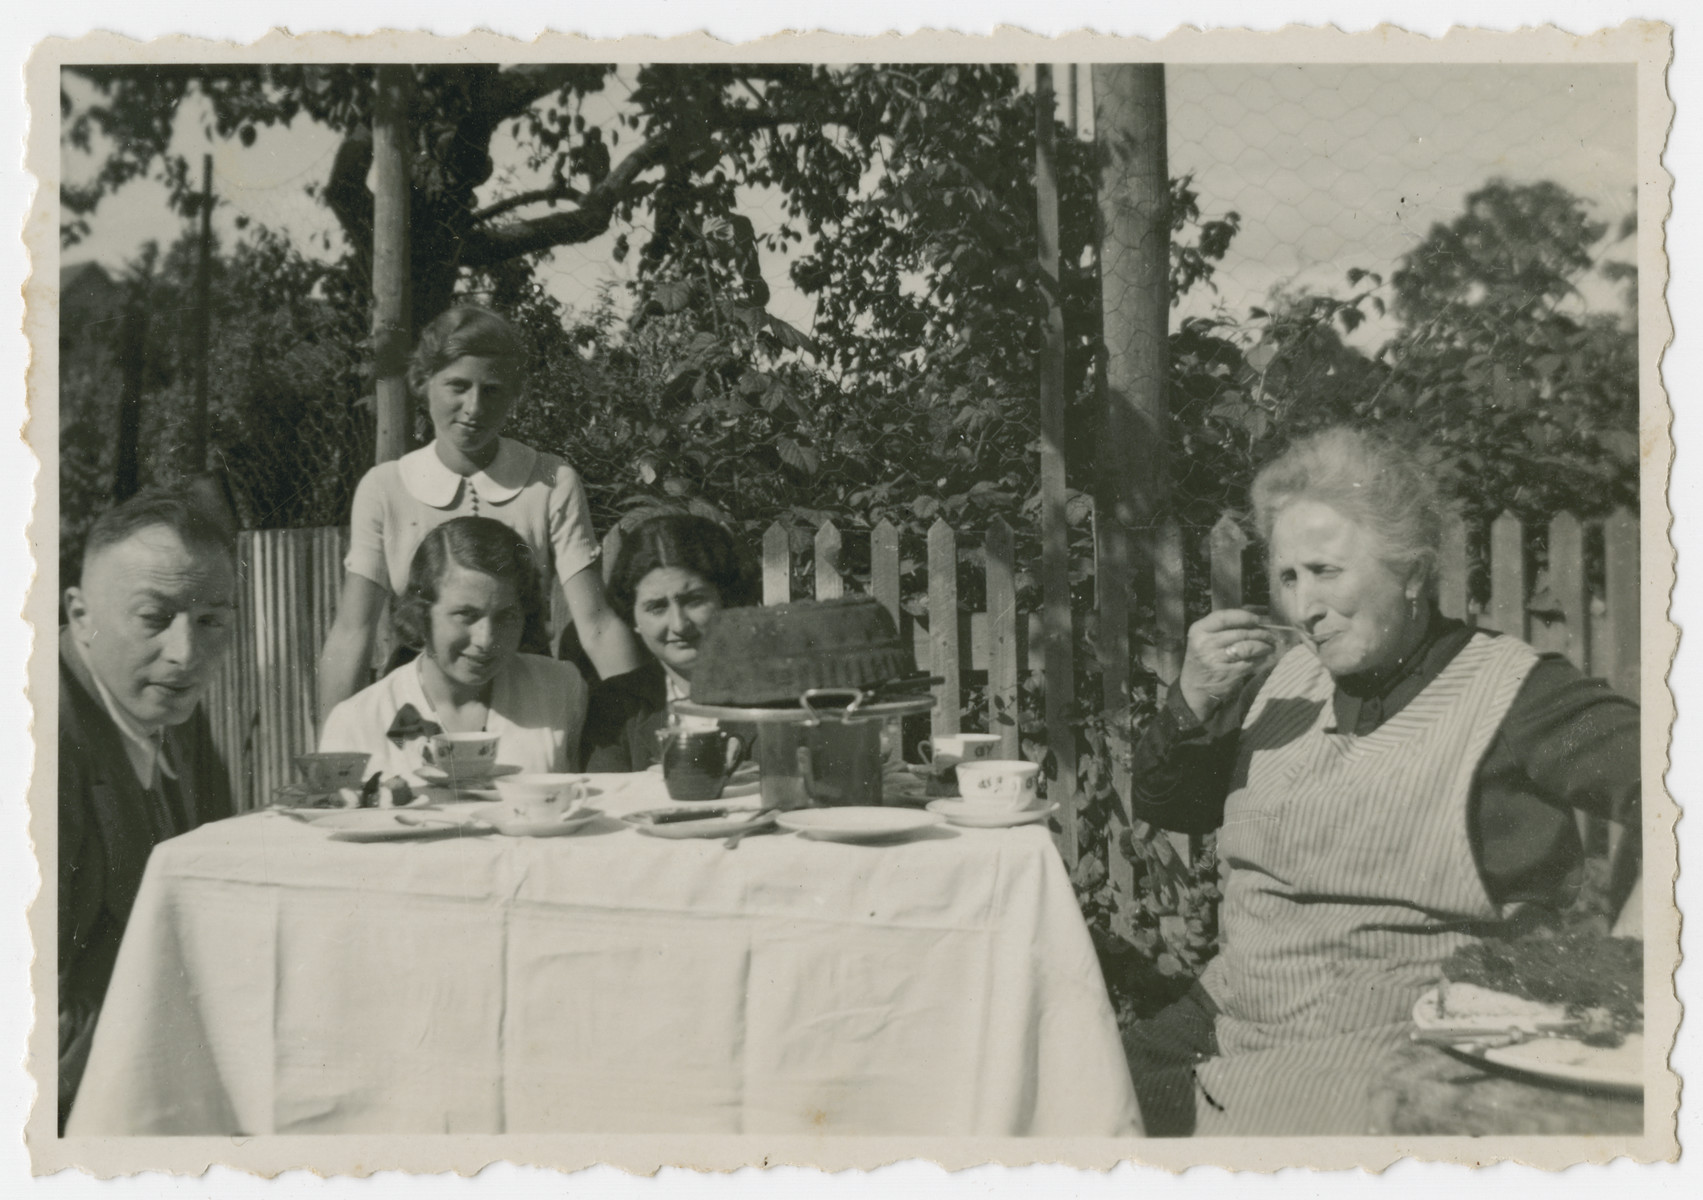 The Kleeblatt family celebrates Walter's birthday in their garden.  Pictured left to right are Arthur Kleeblatt, Edith Kleeblatt, Martha (a cousin standing behind her), Gretel David and Helene Kleeblatt. [Walter Kleeblatt is not pictured and probably took the picture.]